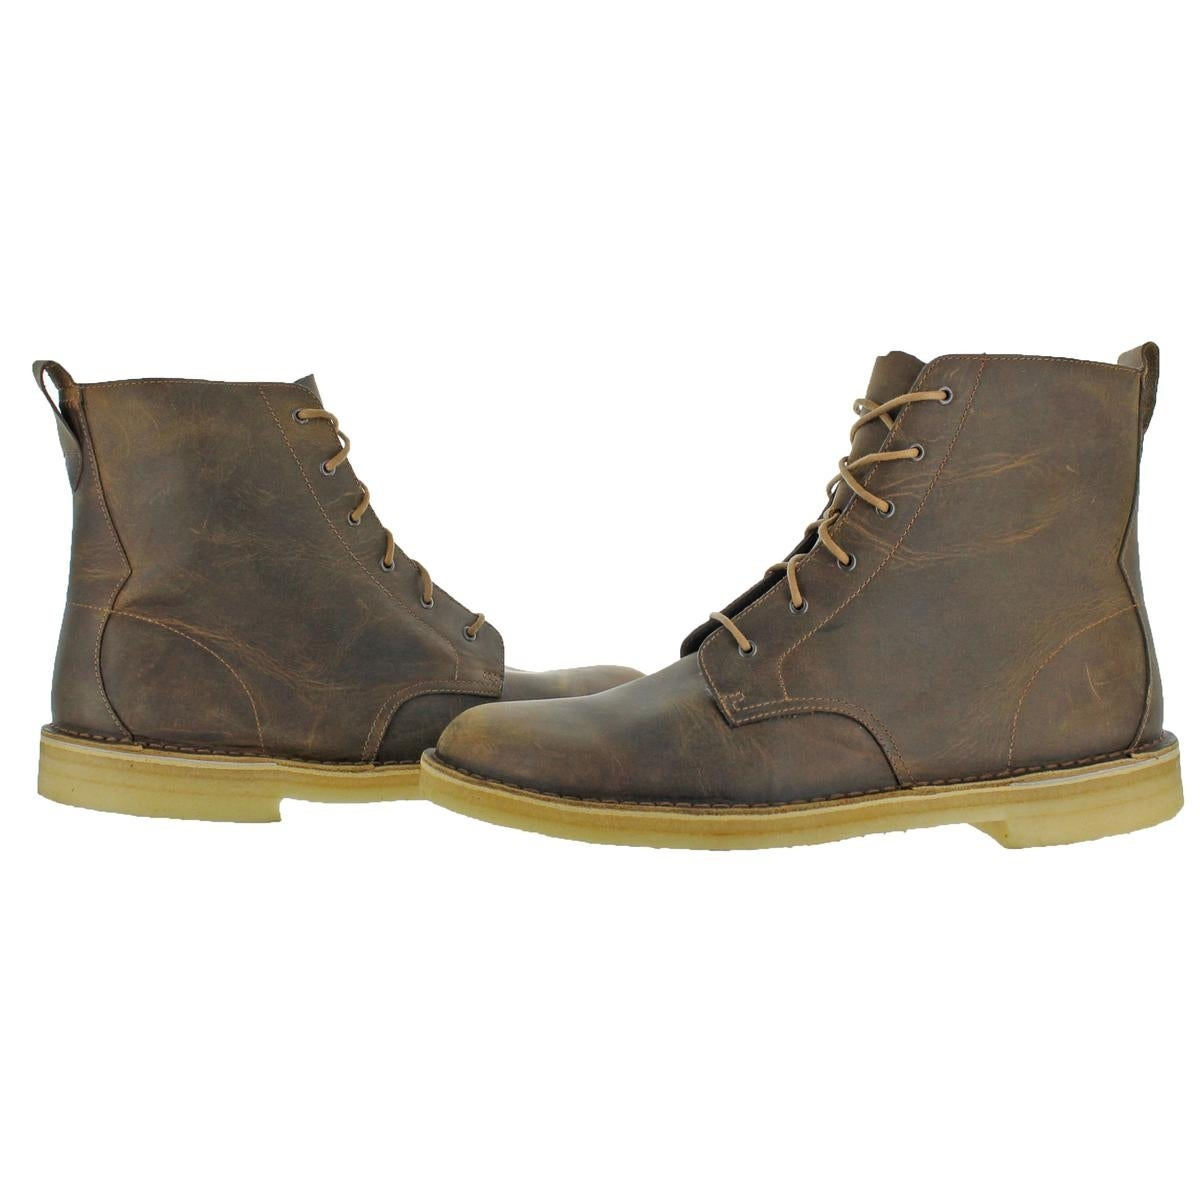 Shop Clarks Mens Desert Mali Desert Boot Rugged Unlined - 13 medium (d) -  Free Shipping Today - Overstock.com - 22862685